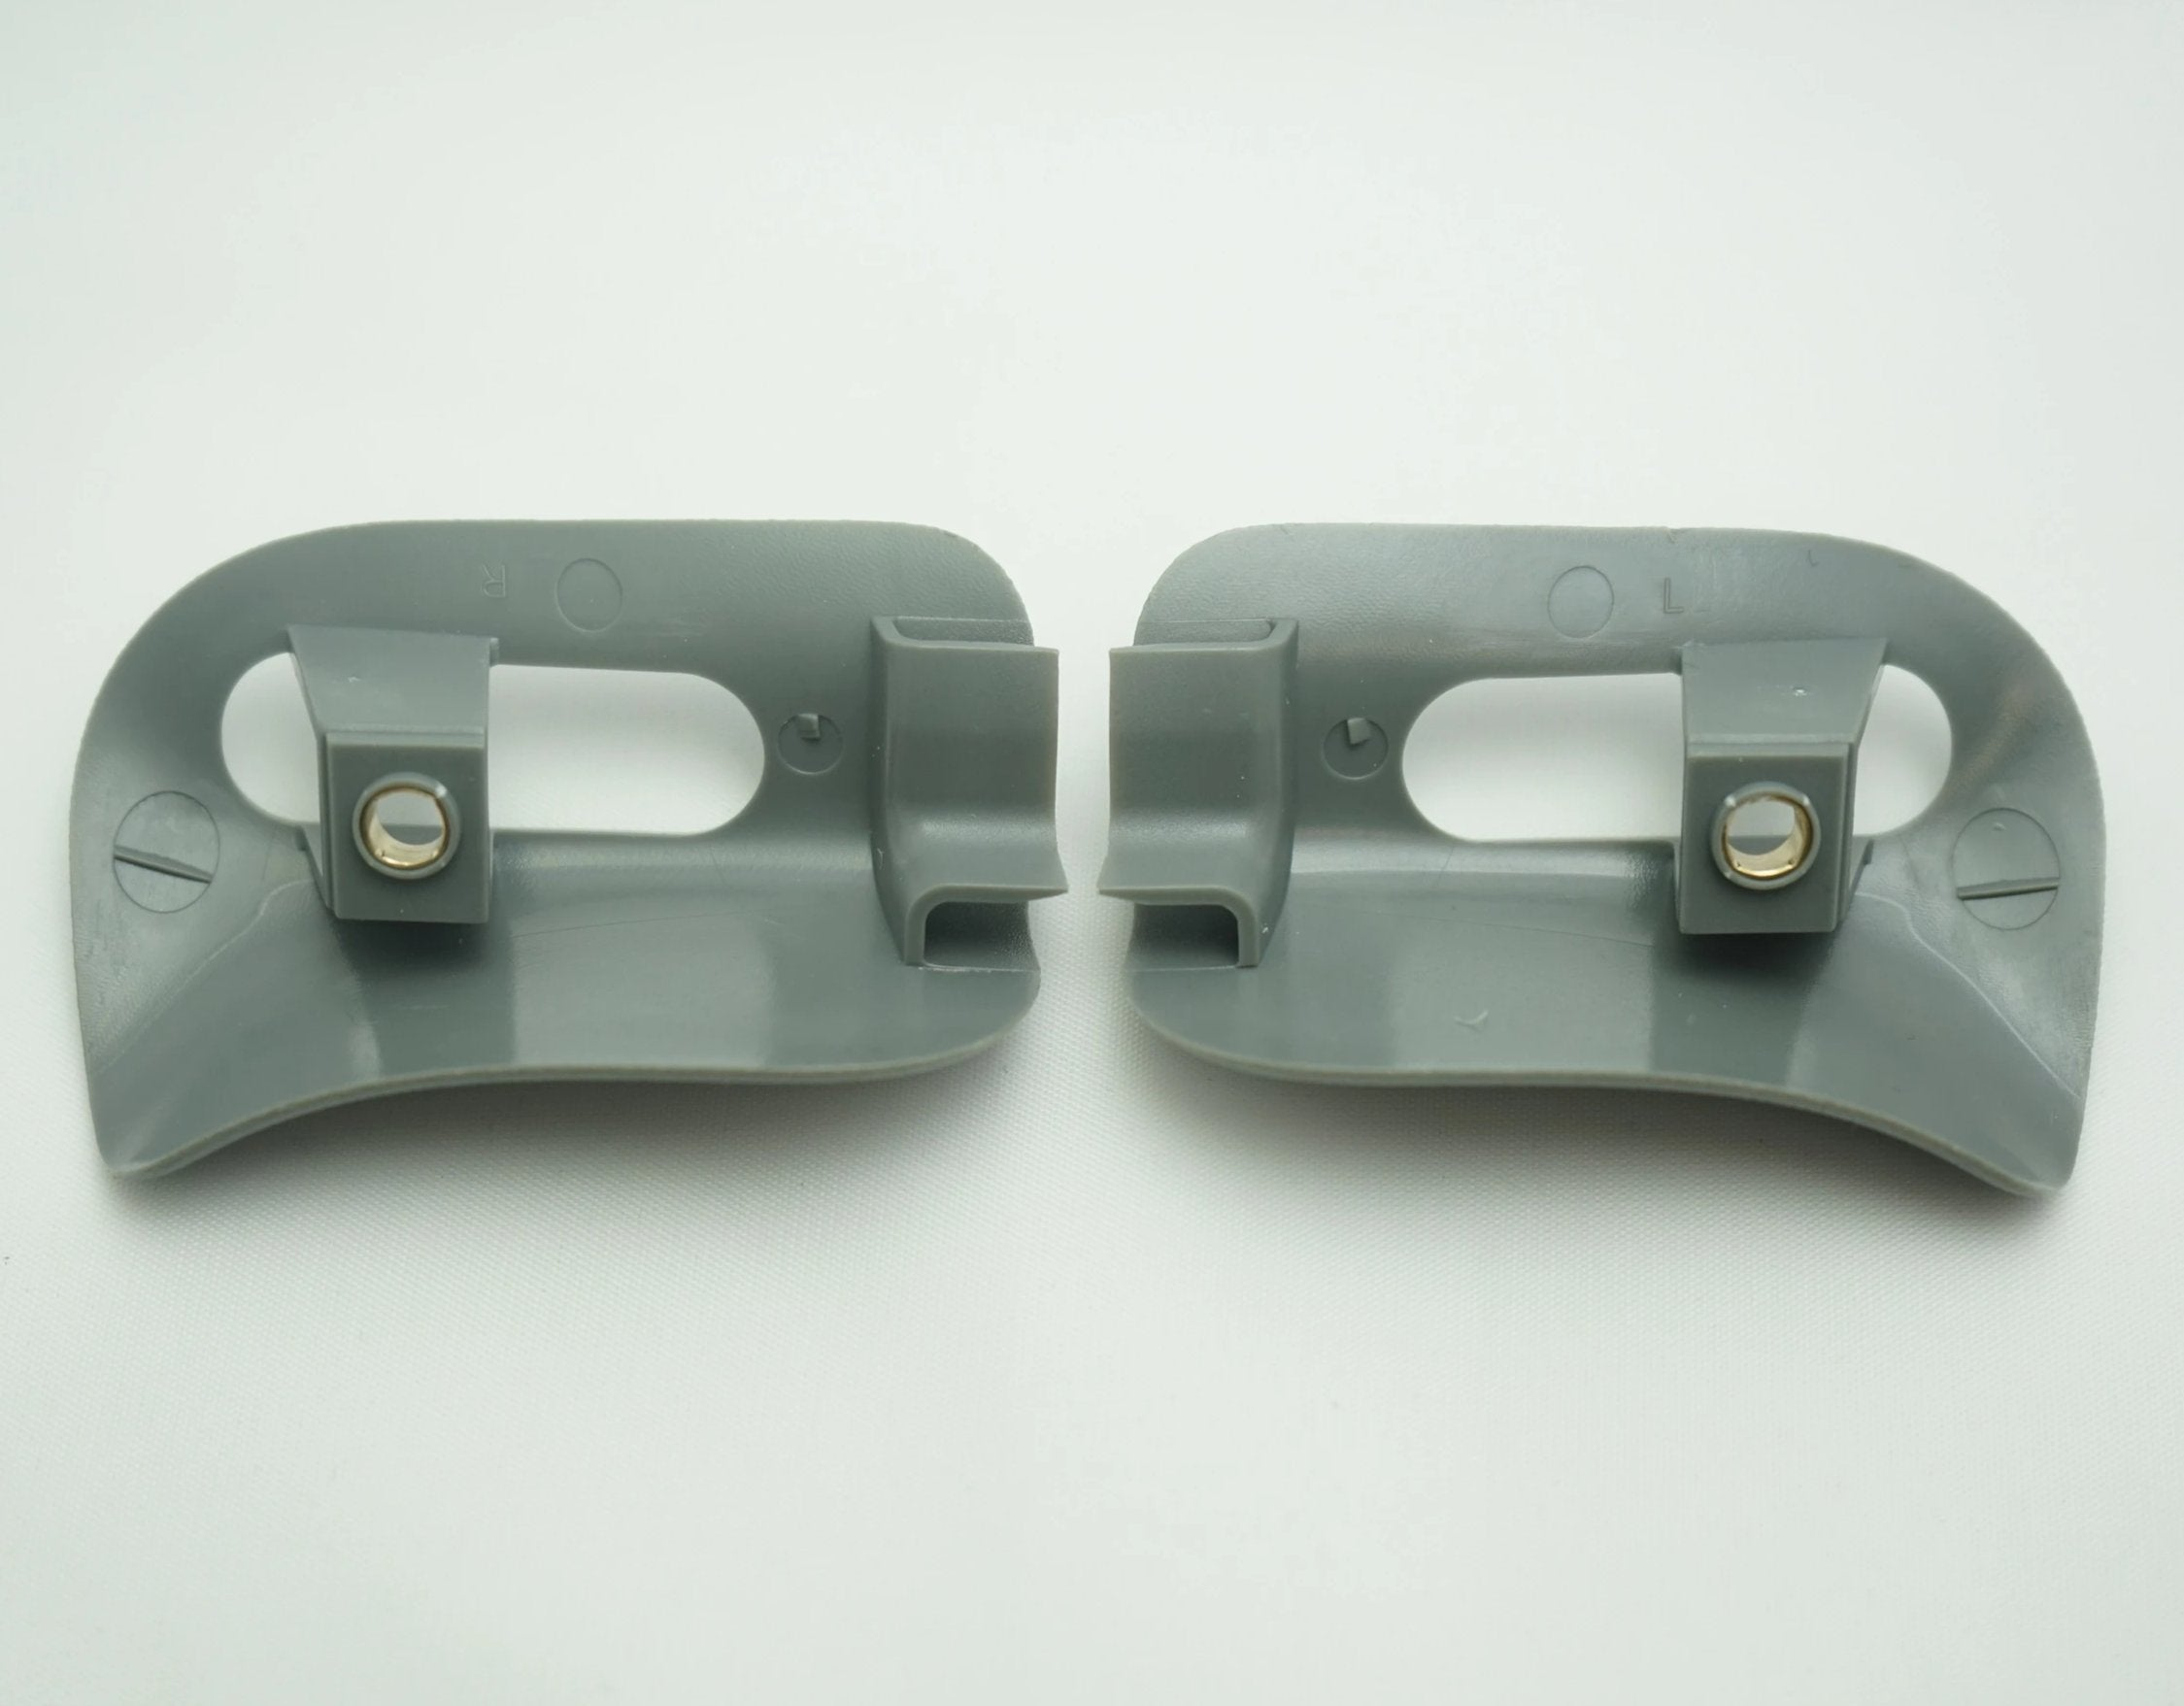 Pair of Sun Visor Trim Caps - Gray - Classic Trim Parts